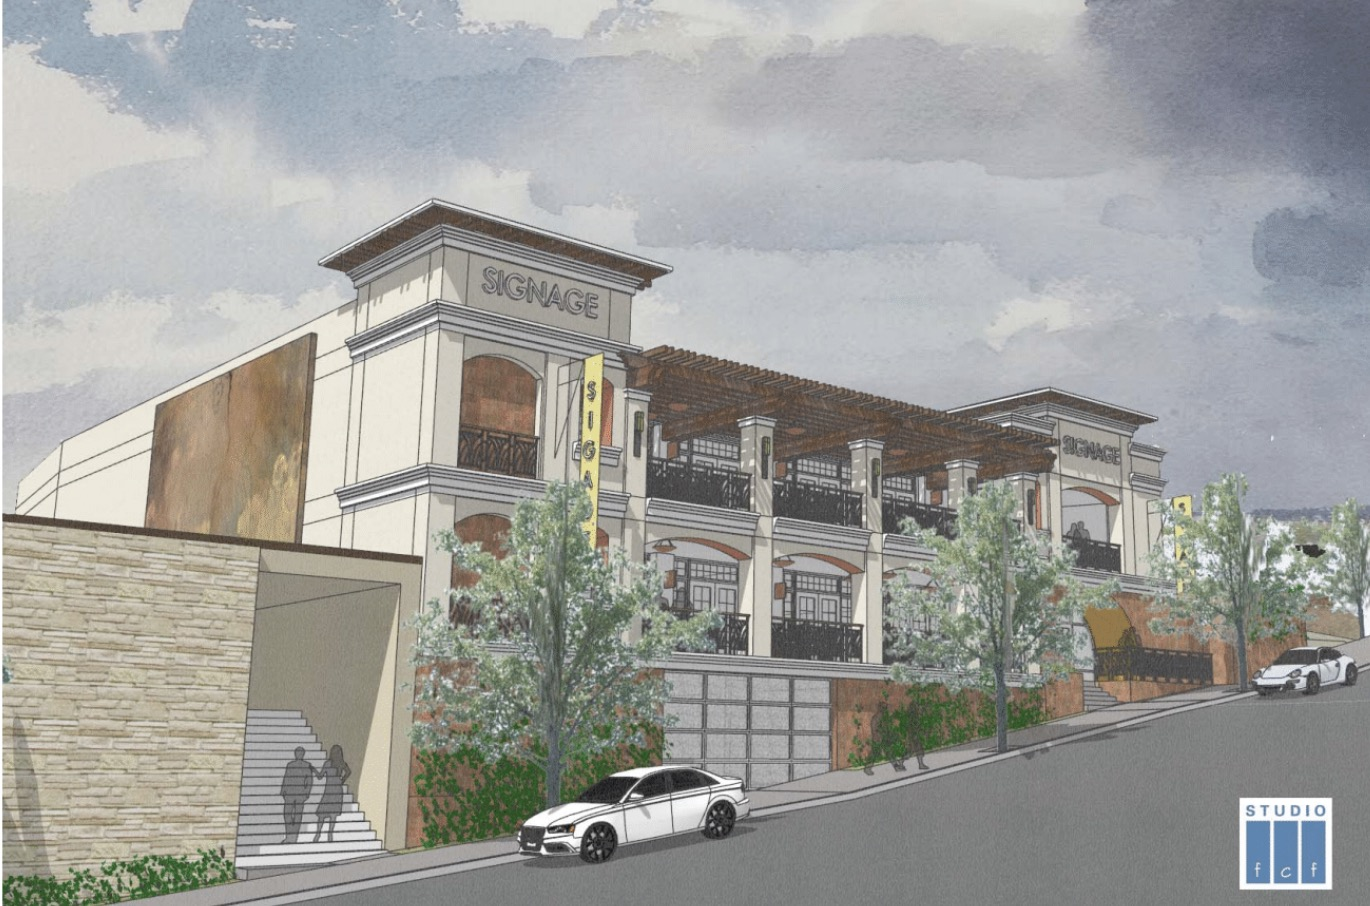 6211 Medau Blvd - EXCITING NEW OPPORTUNITY: McCaulou's Department Store vacating & space will be upgraded.Ed Hirshberg: ehirshberg@aol.com